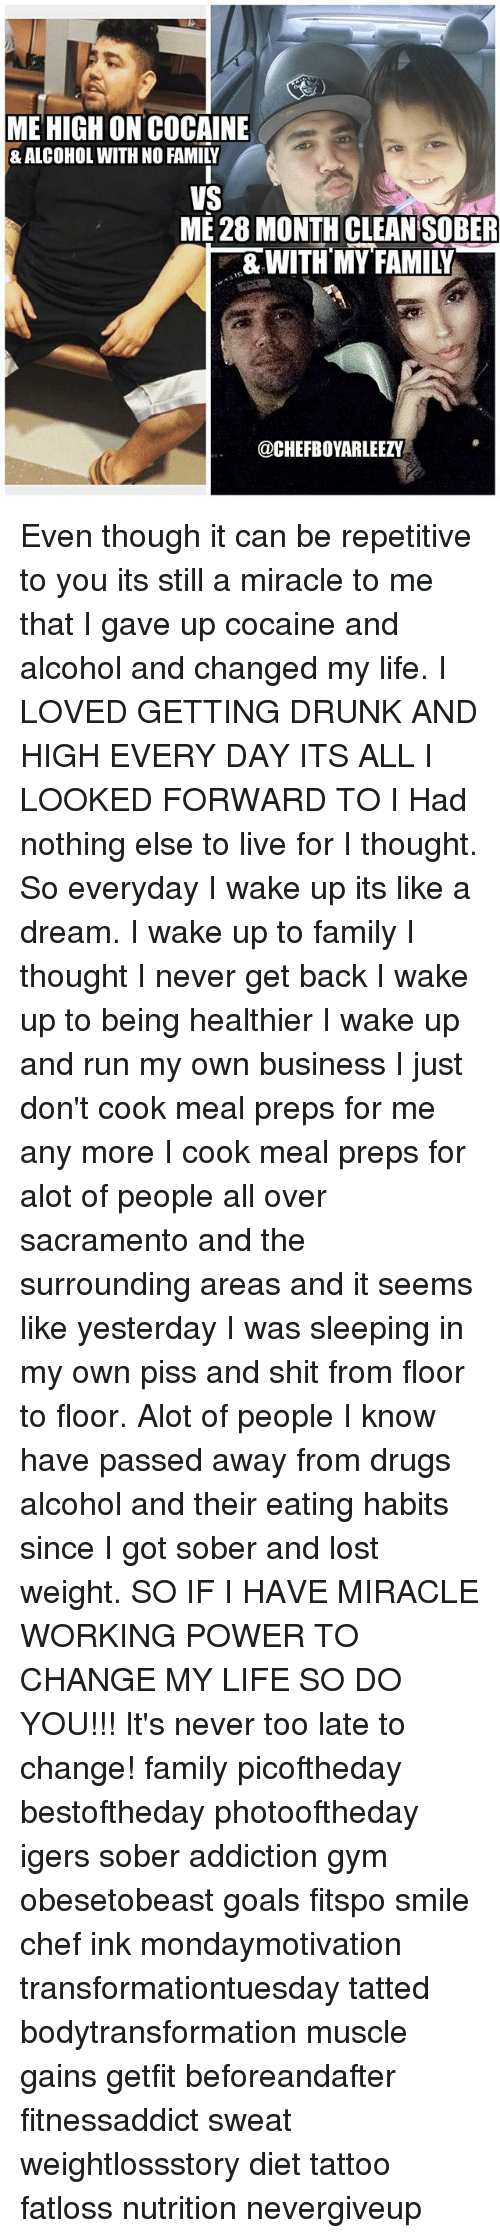 What does a drunk dream about